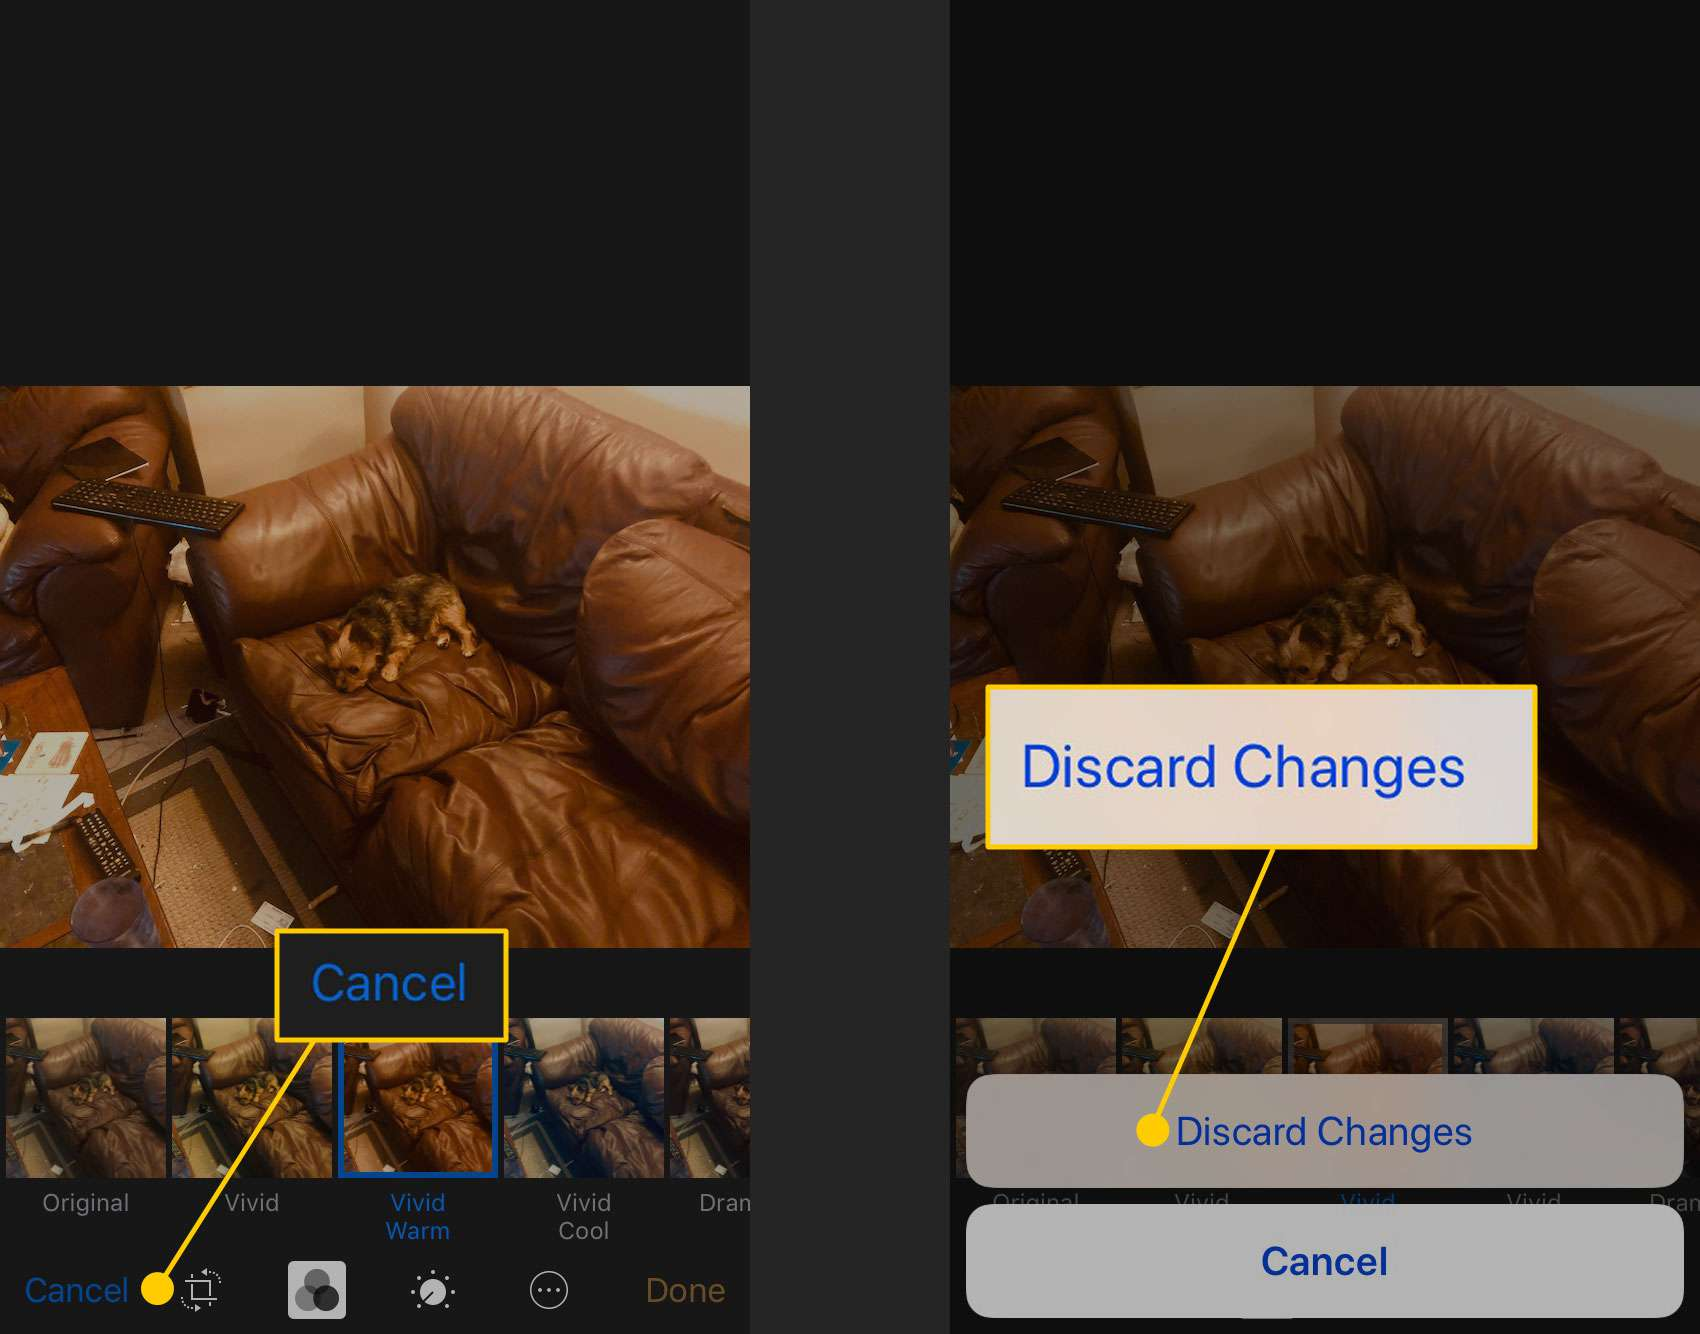 Discarding changes when adding a filter to a photo on an iPhone